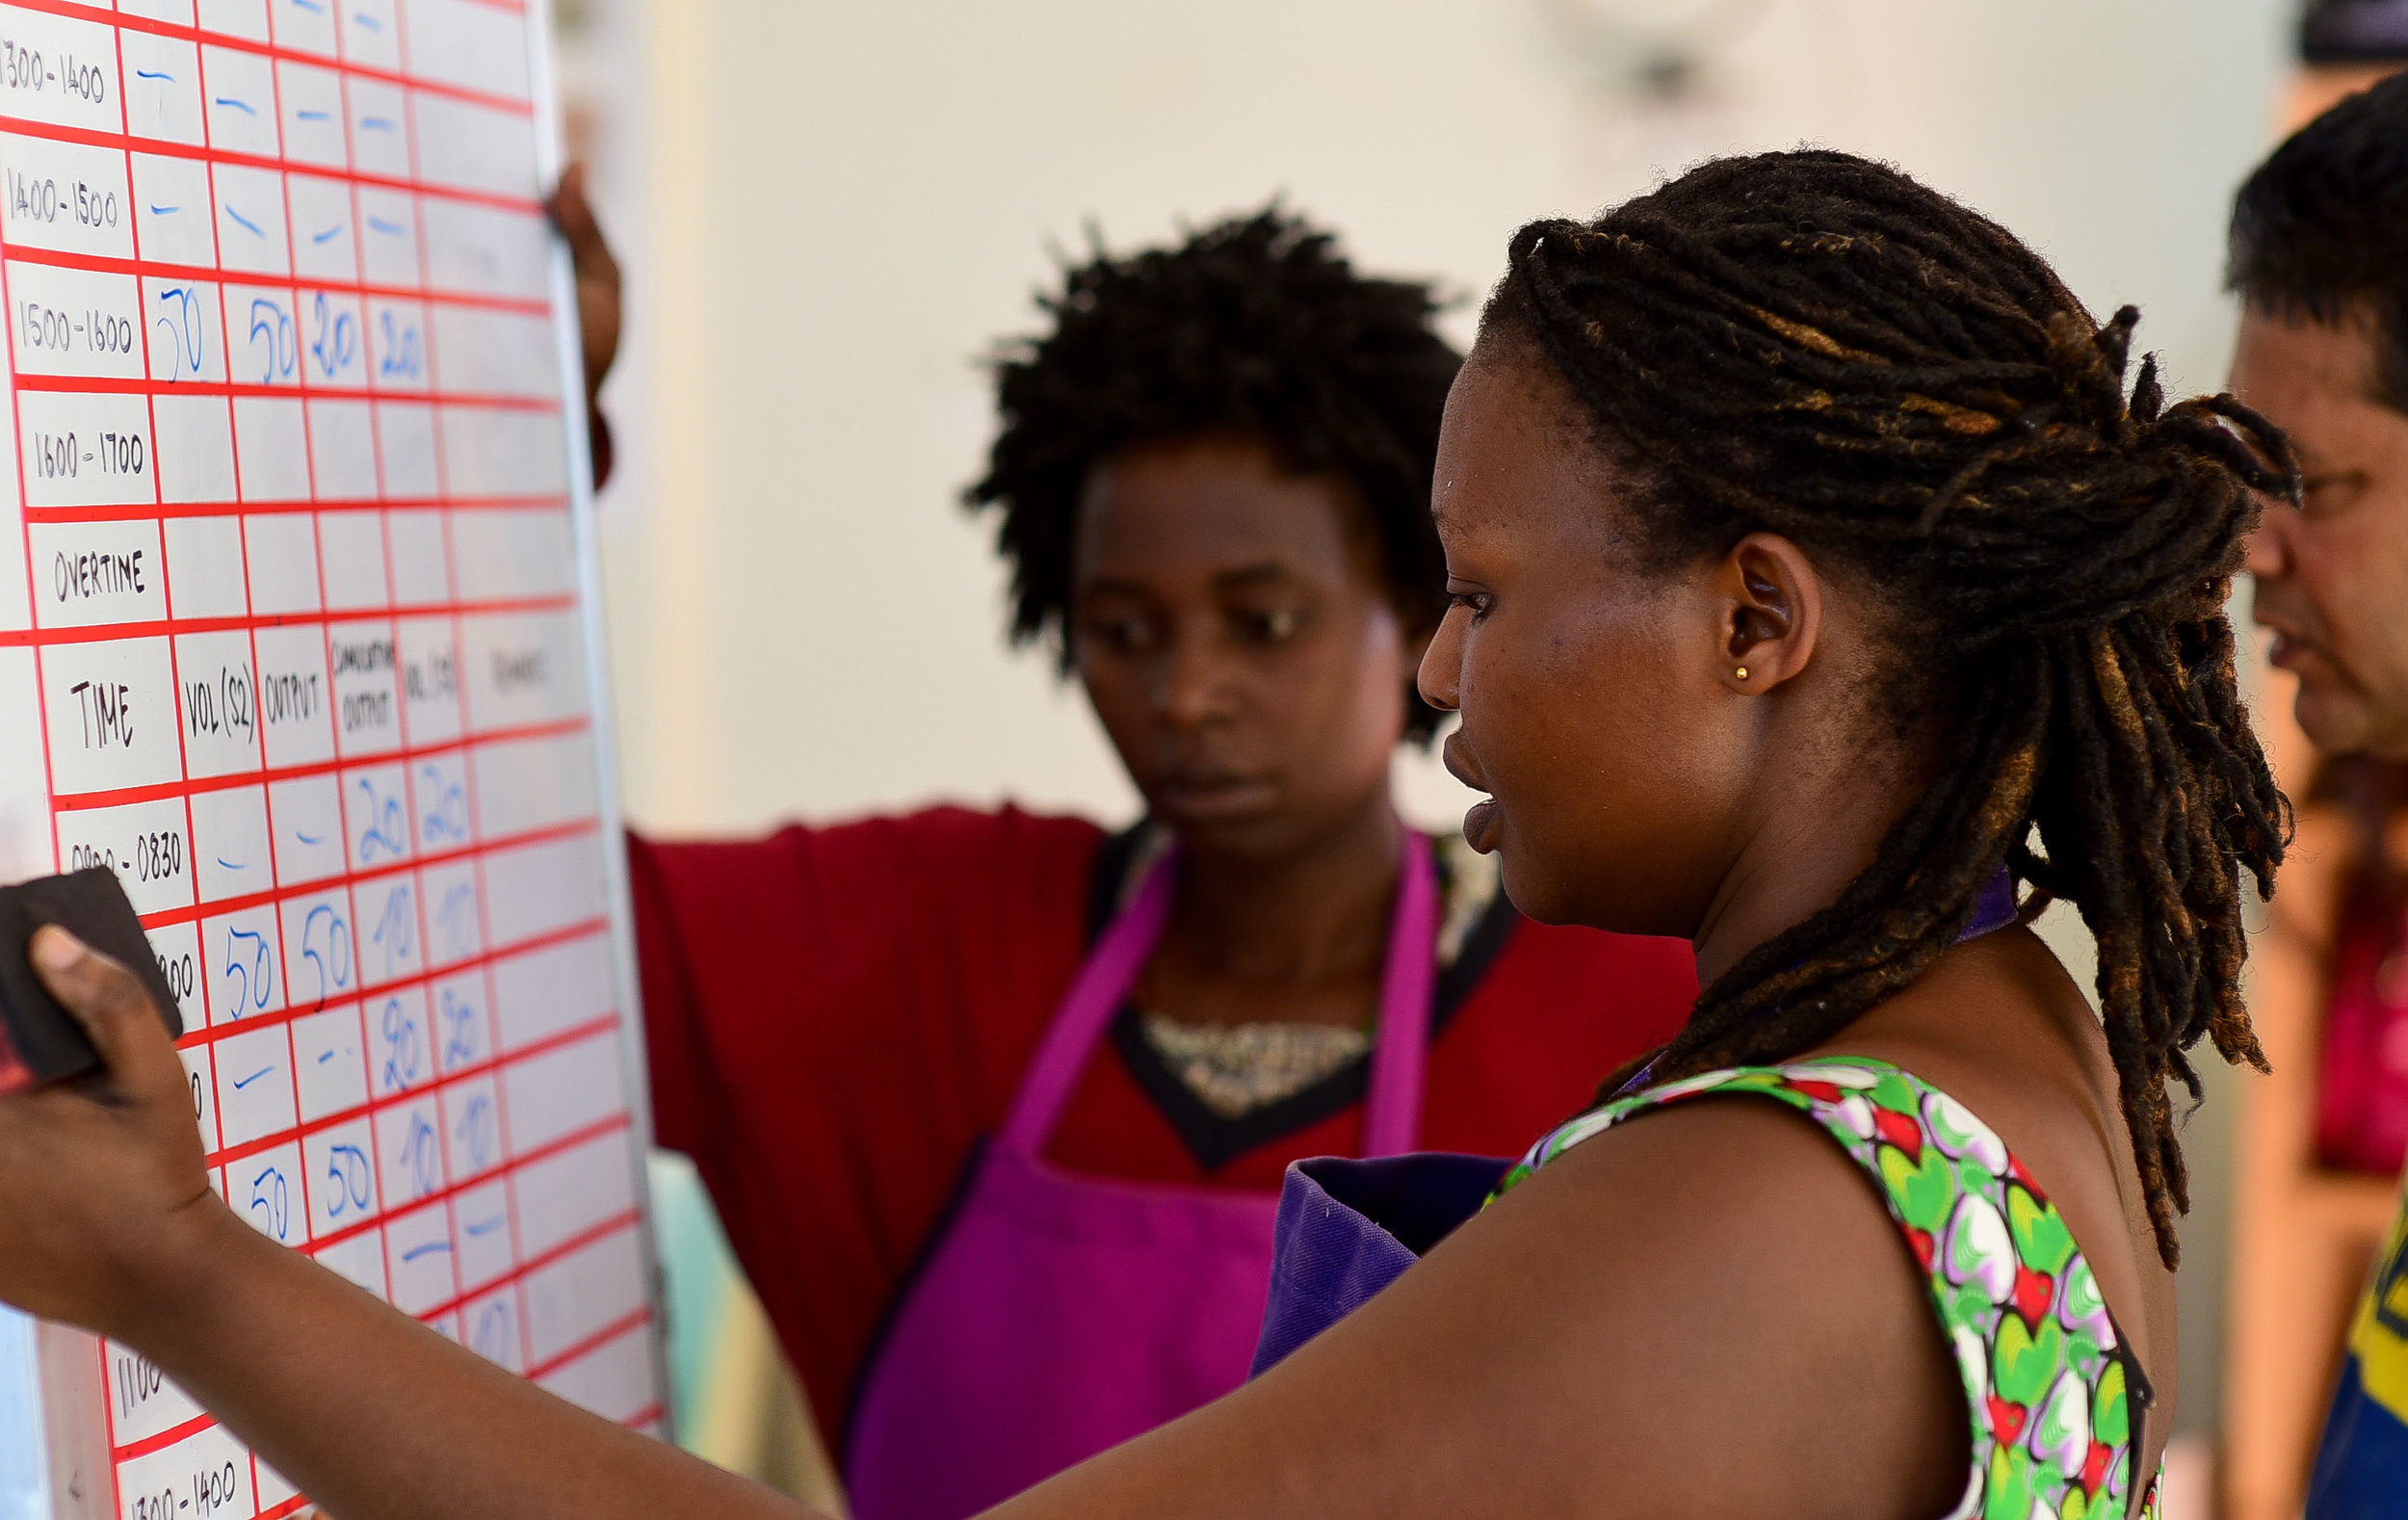 Women working at the ADC Masoro Kate Spade New York factory.